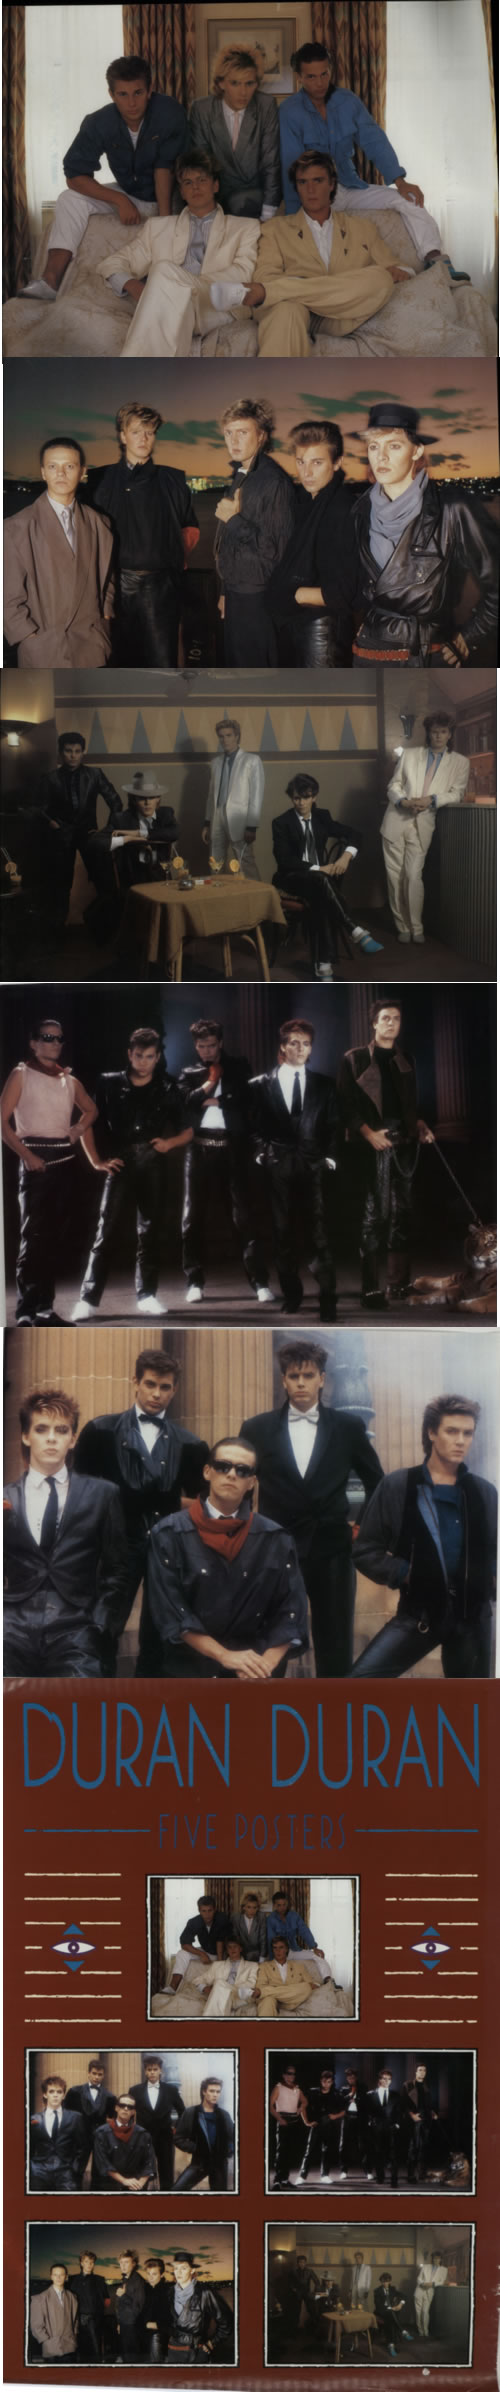 Duran Duran Five Posters Studio Shots 1984 UK poster POSTER SET